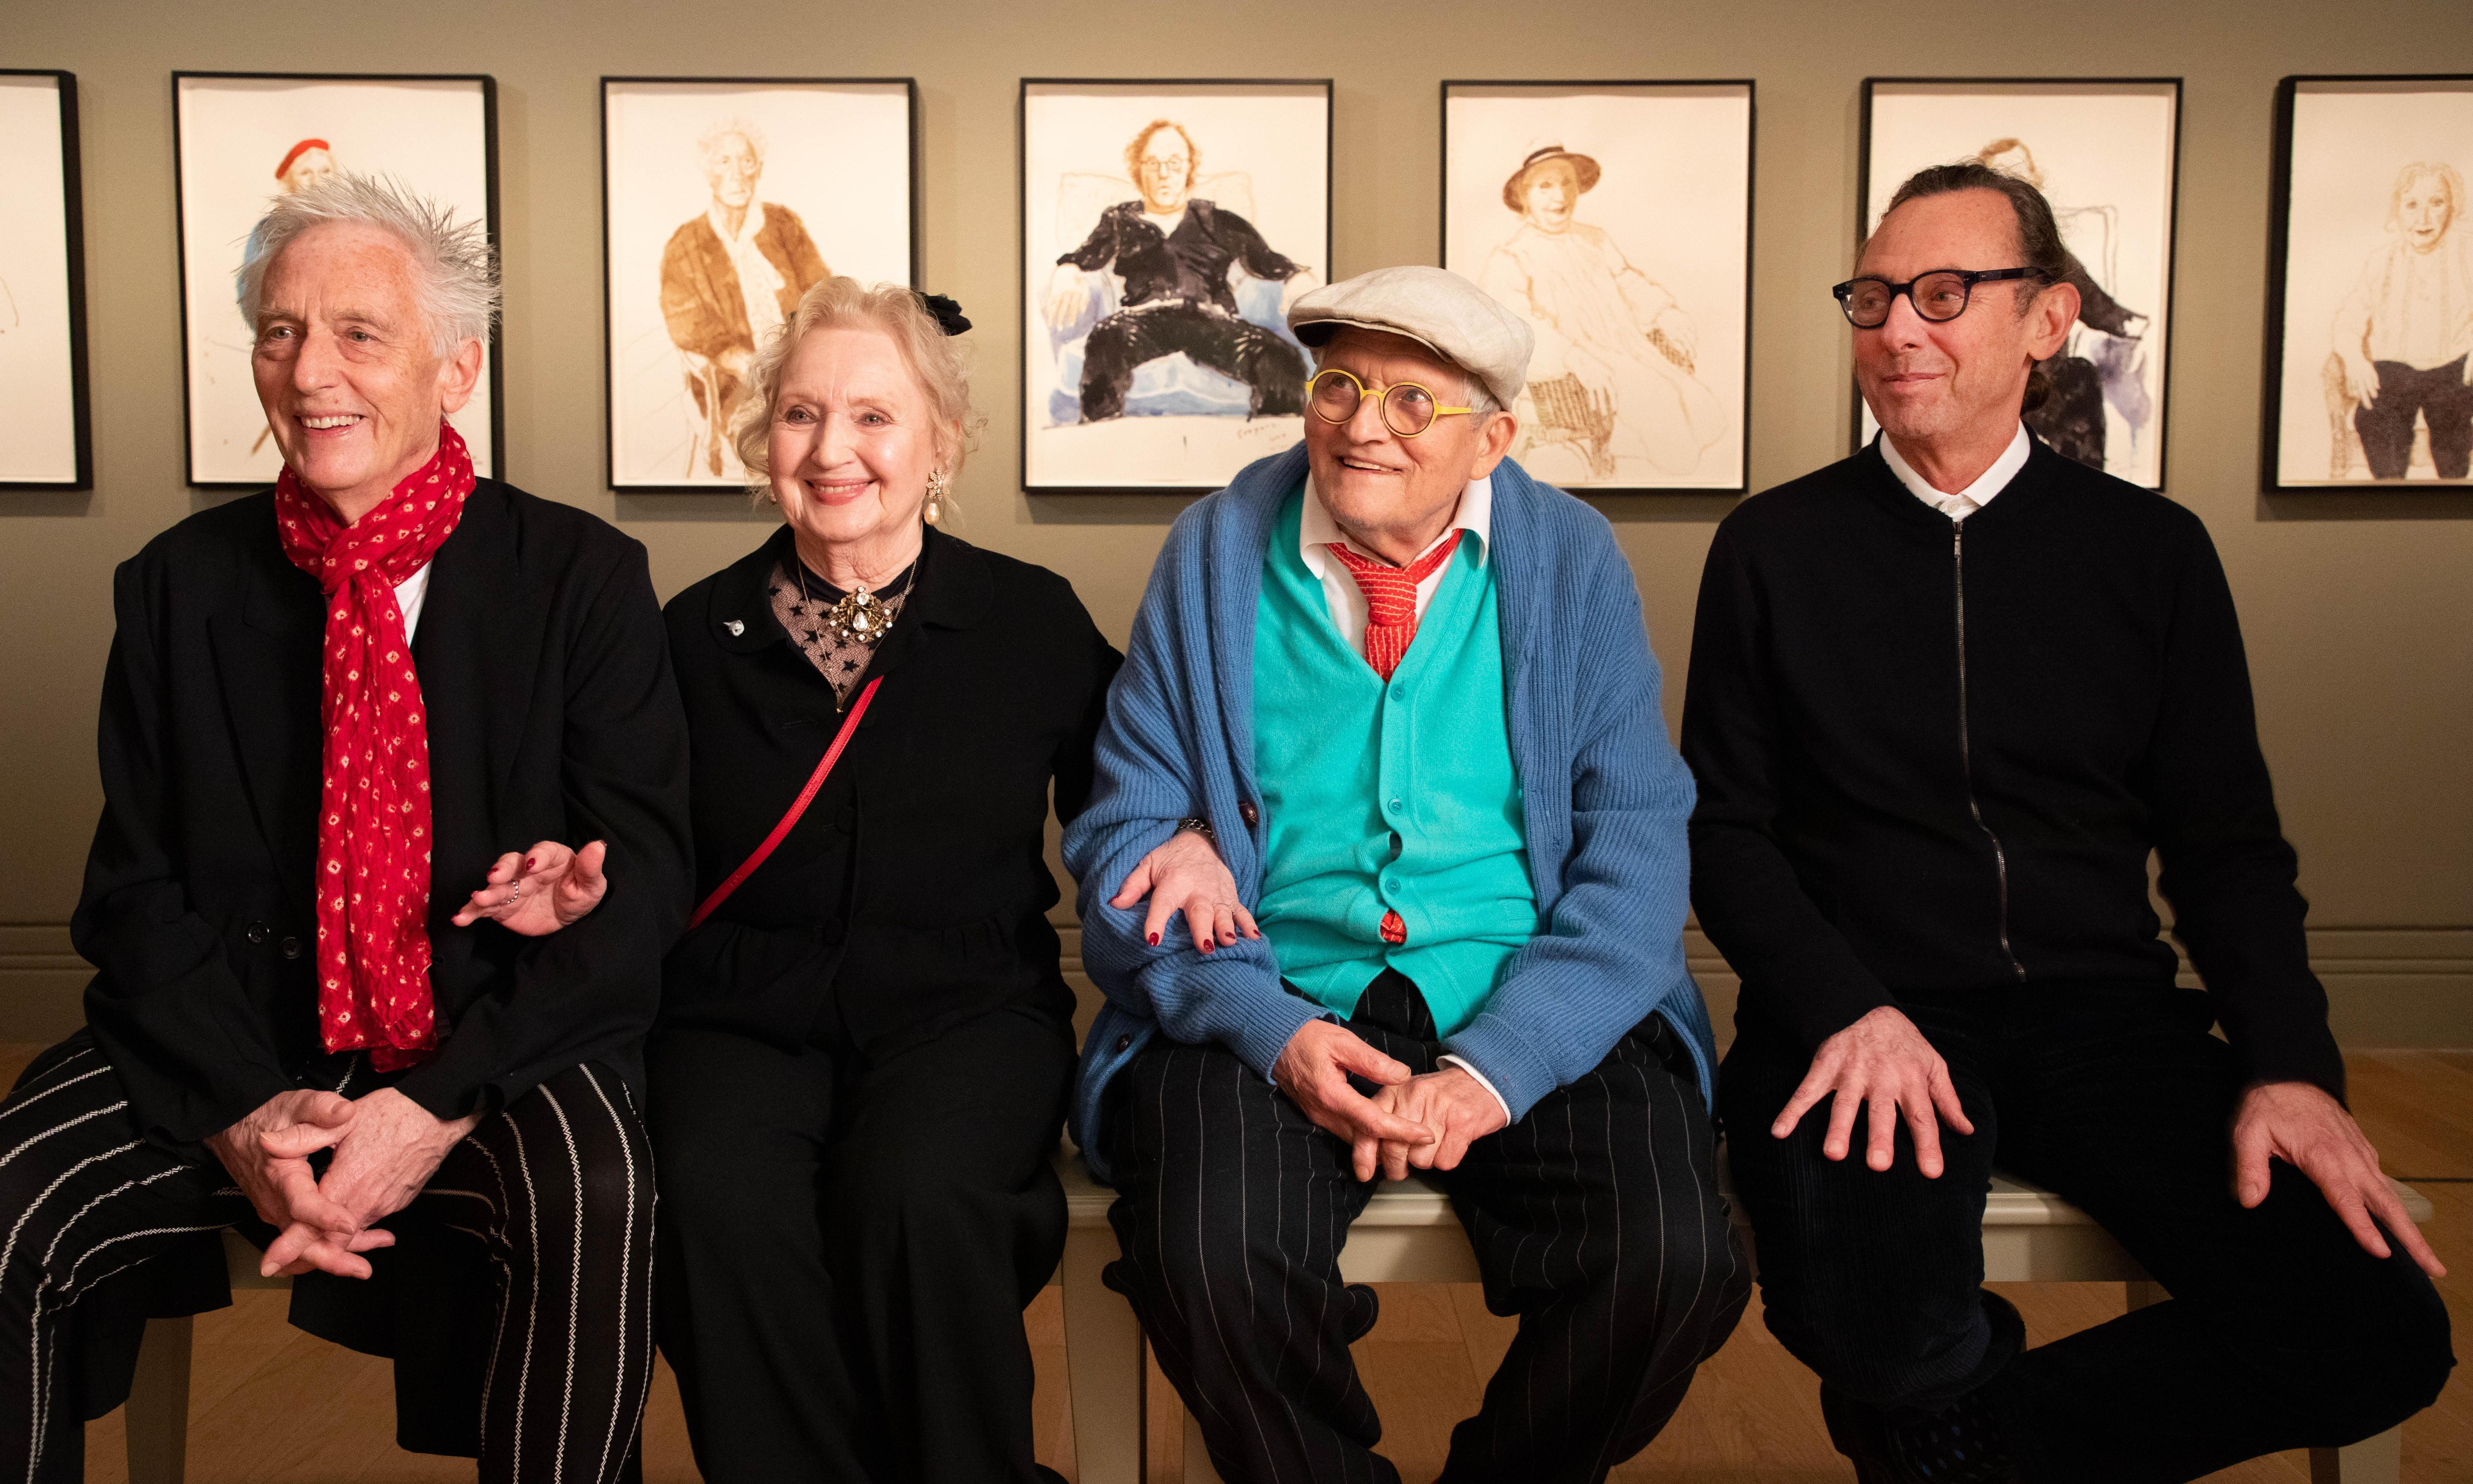 'It's horrible!': Hockney muse recoils at portrait of her as older woman